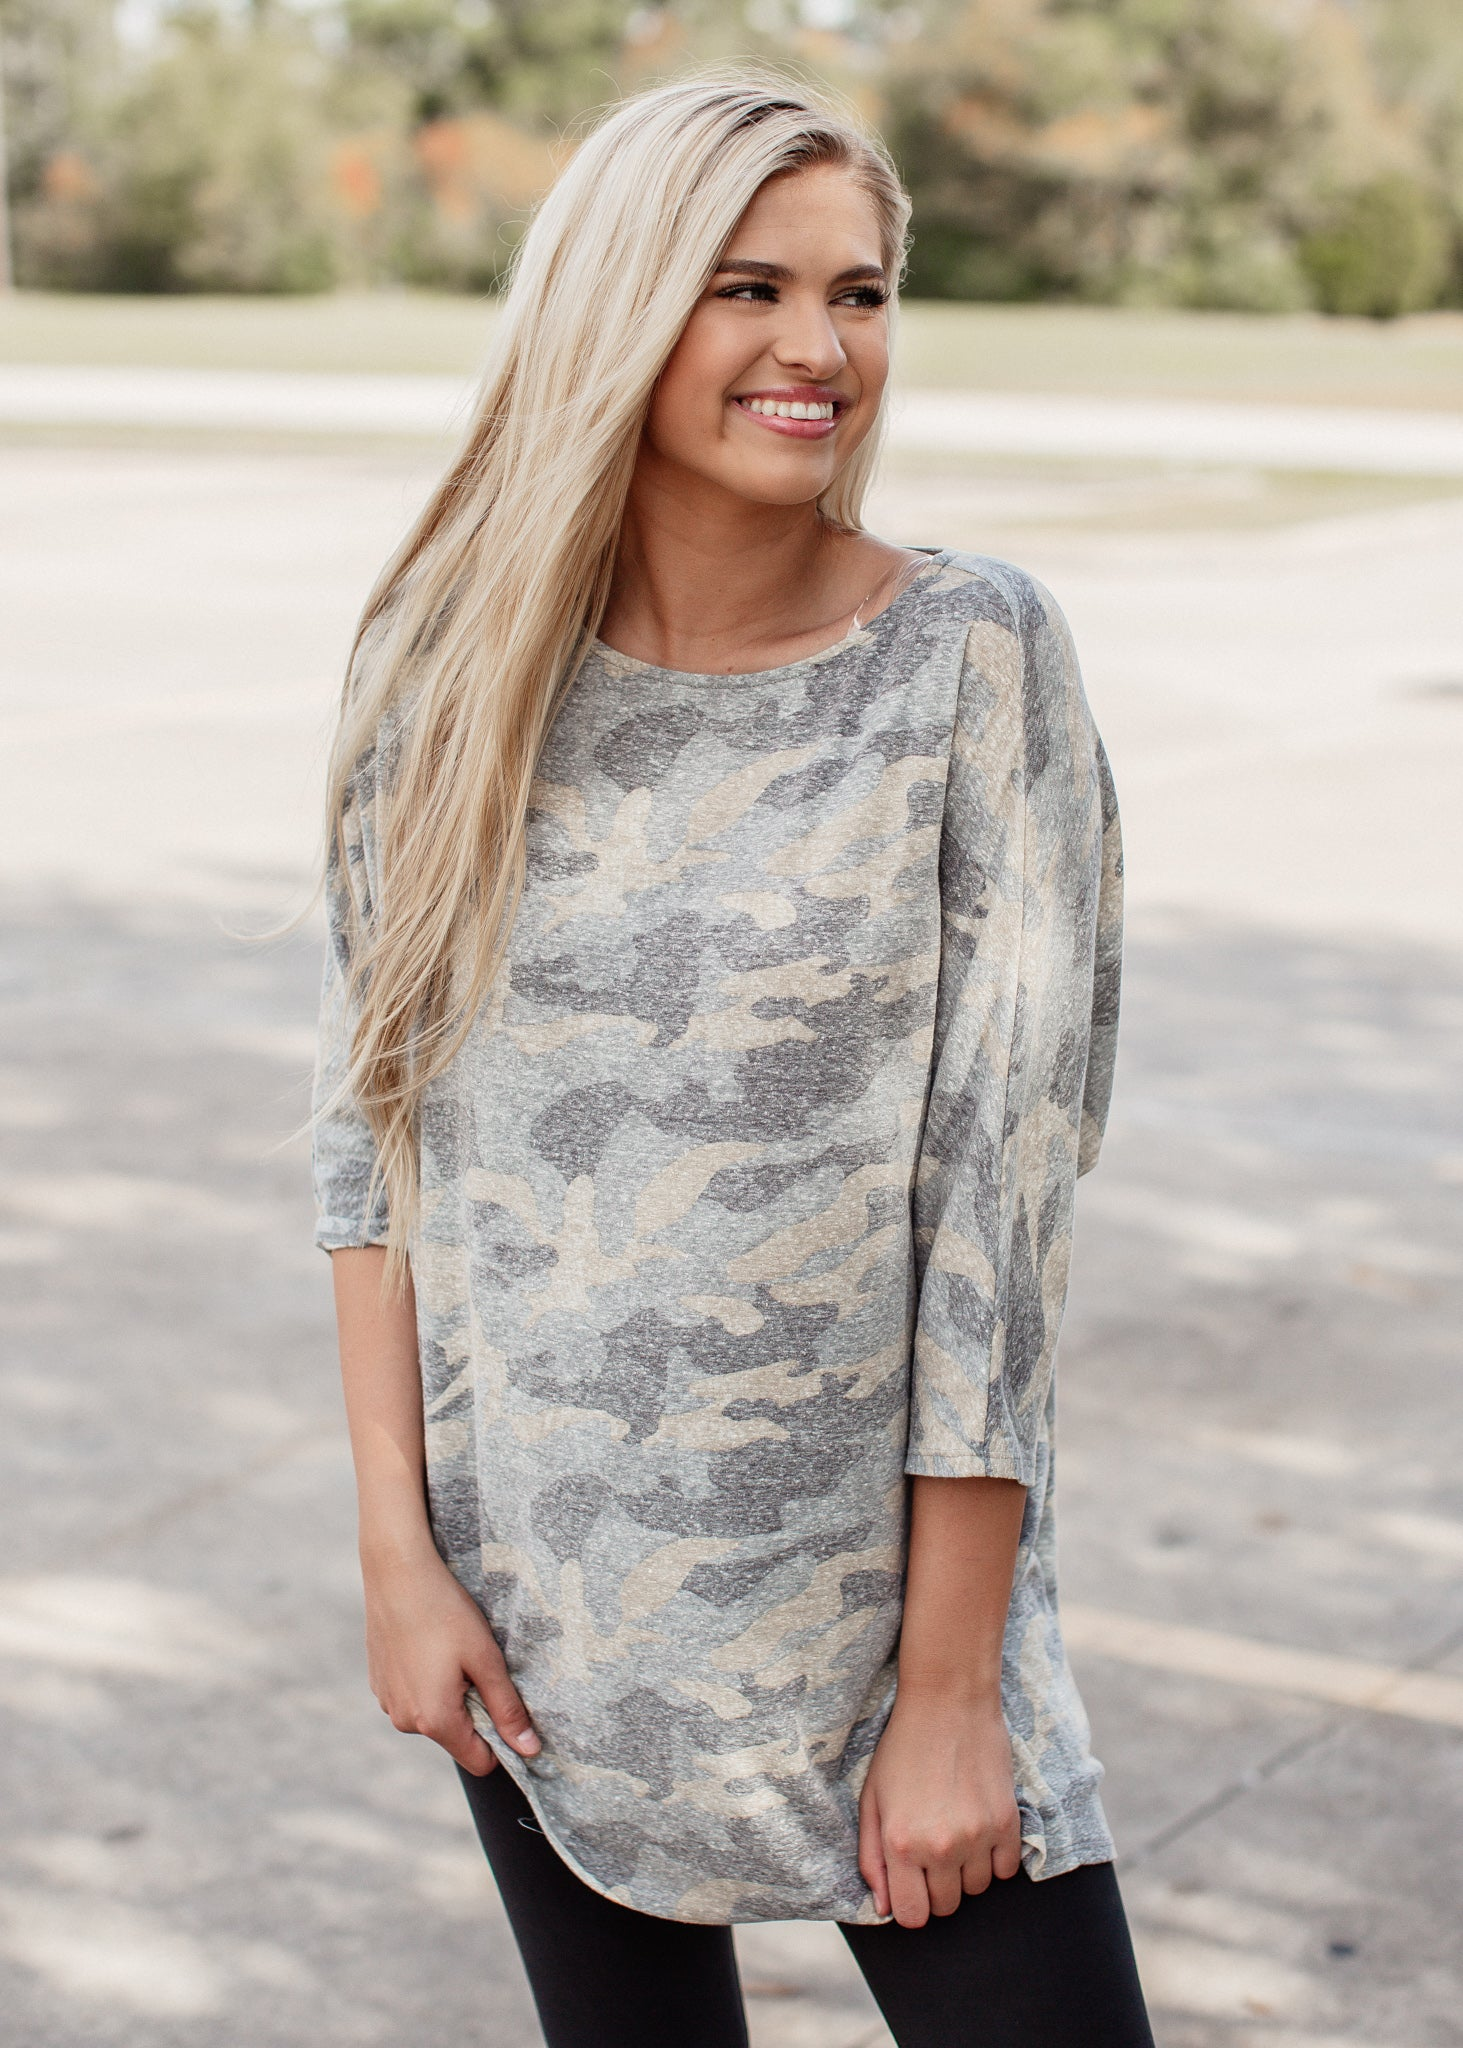 Camo Asymmetrical Dolman Top (Can fit xl)